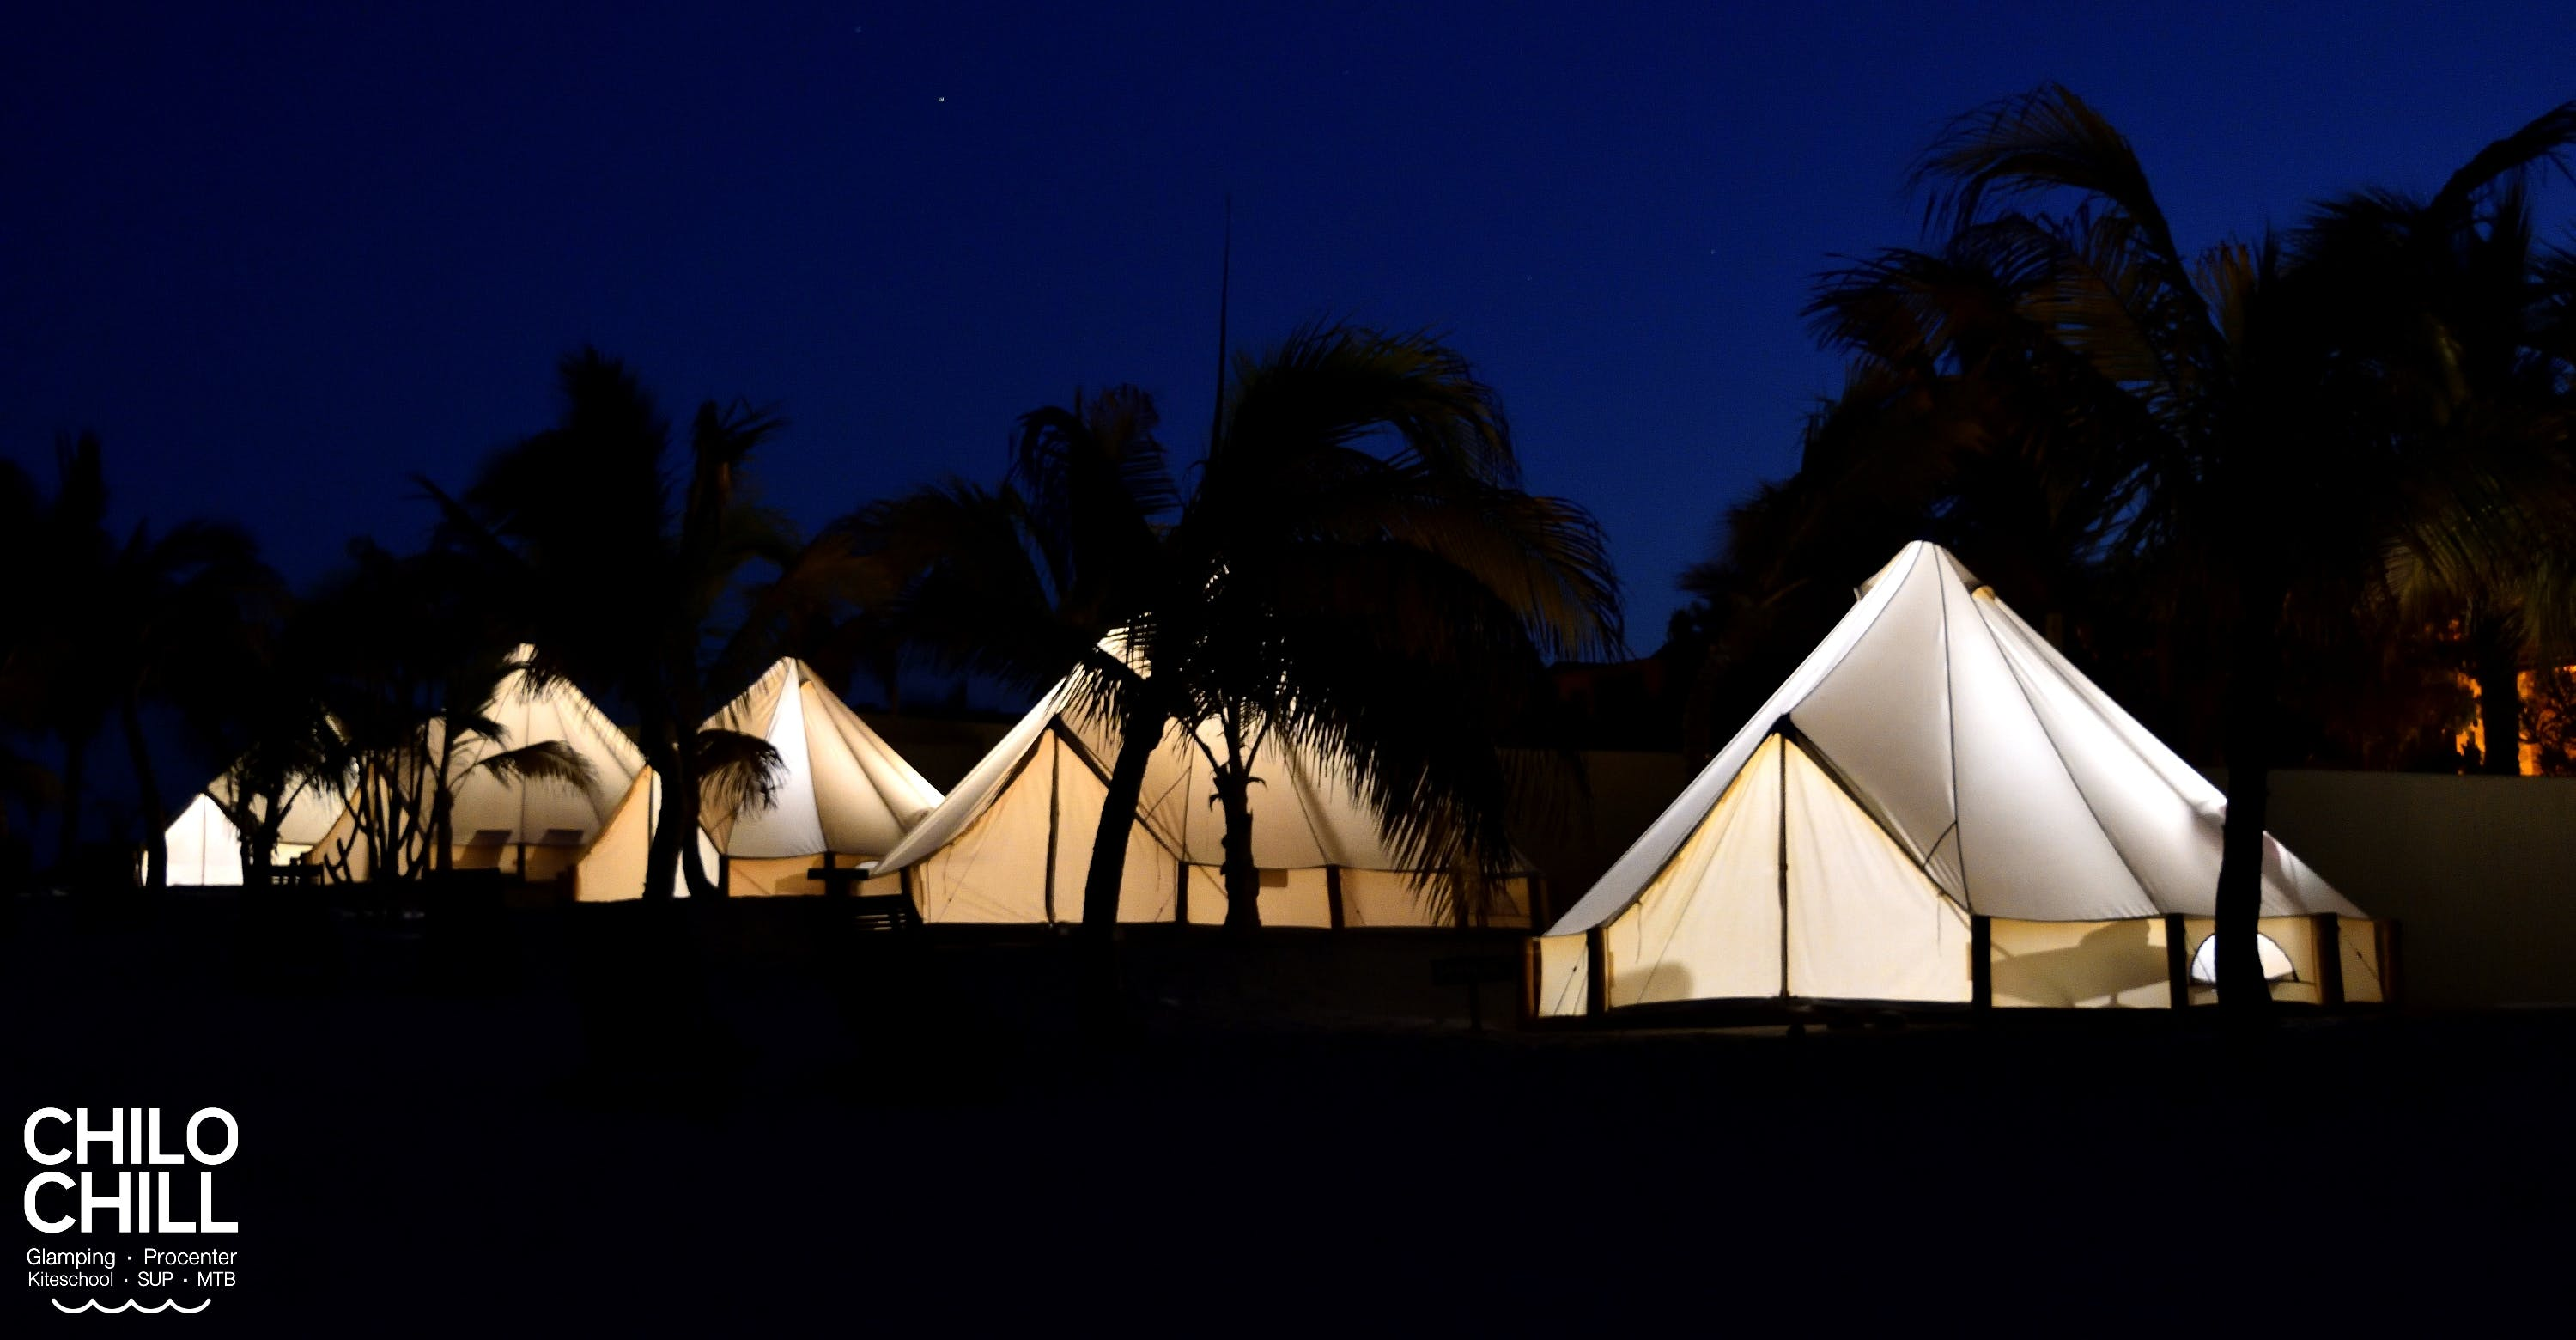 Nights in Baja California Sur look like that - it is luxury camping in ChiloChill